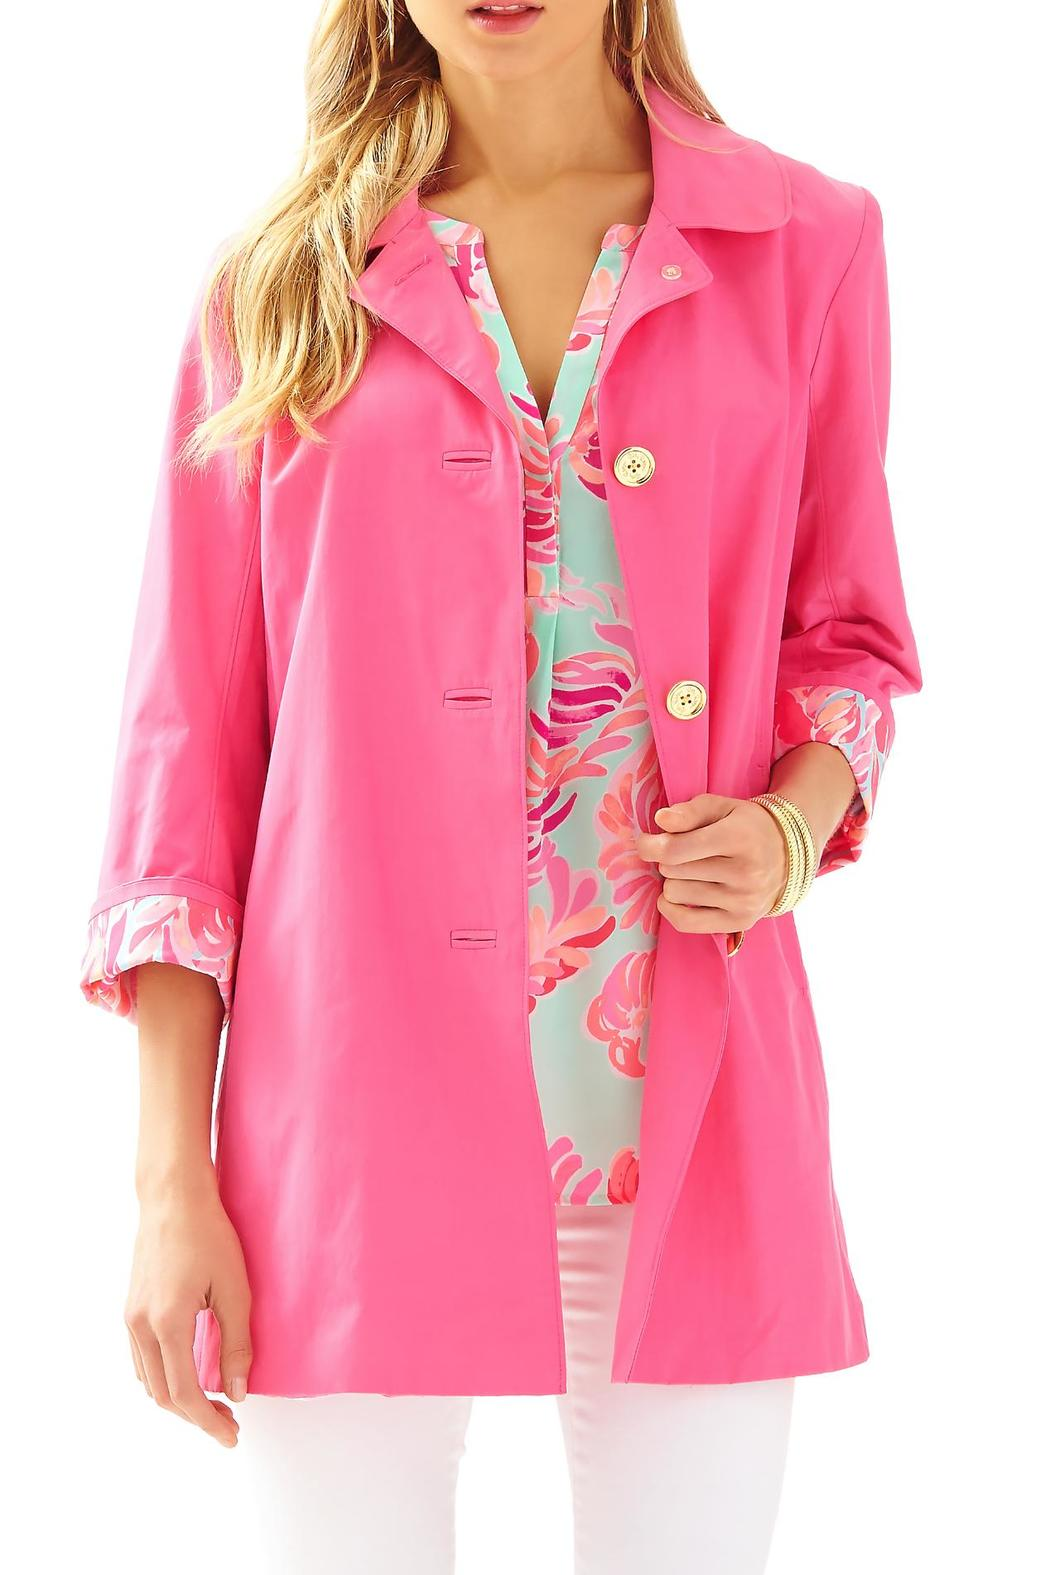 lilly pulitzer palm beach swing-jacket from sandestin golf and